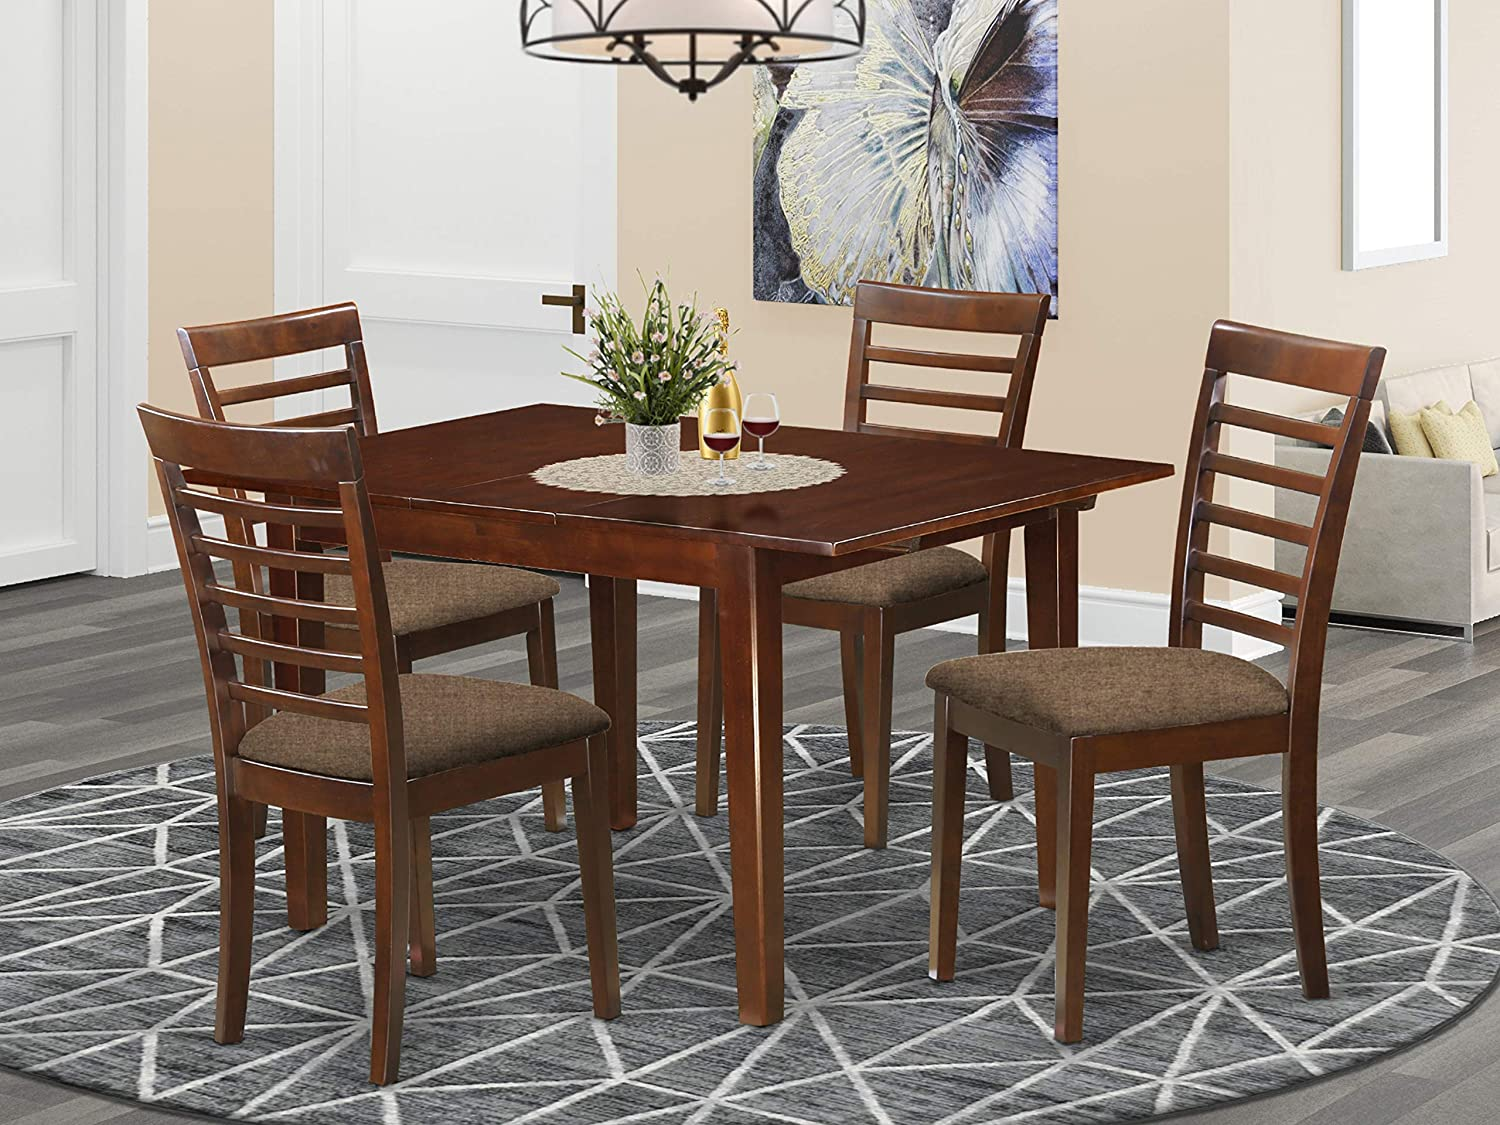 East West Furniture MILA5-MAH-C 5-Piece Max 62% OFF Room Set Ranking integrated 1st place Dining Kitchen